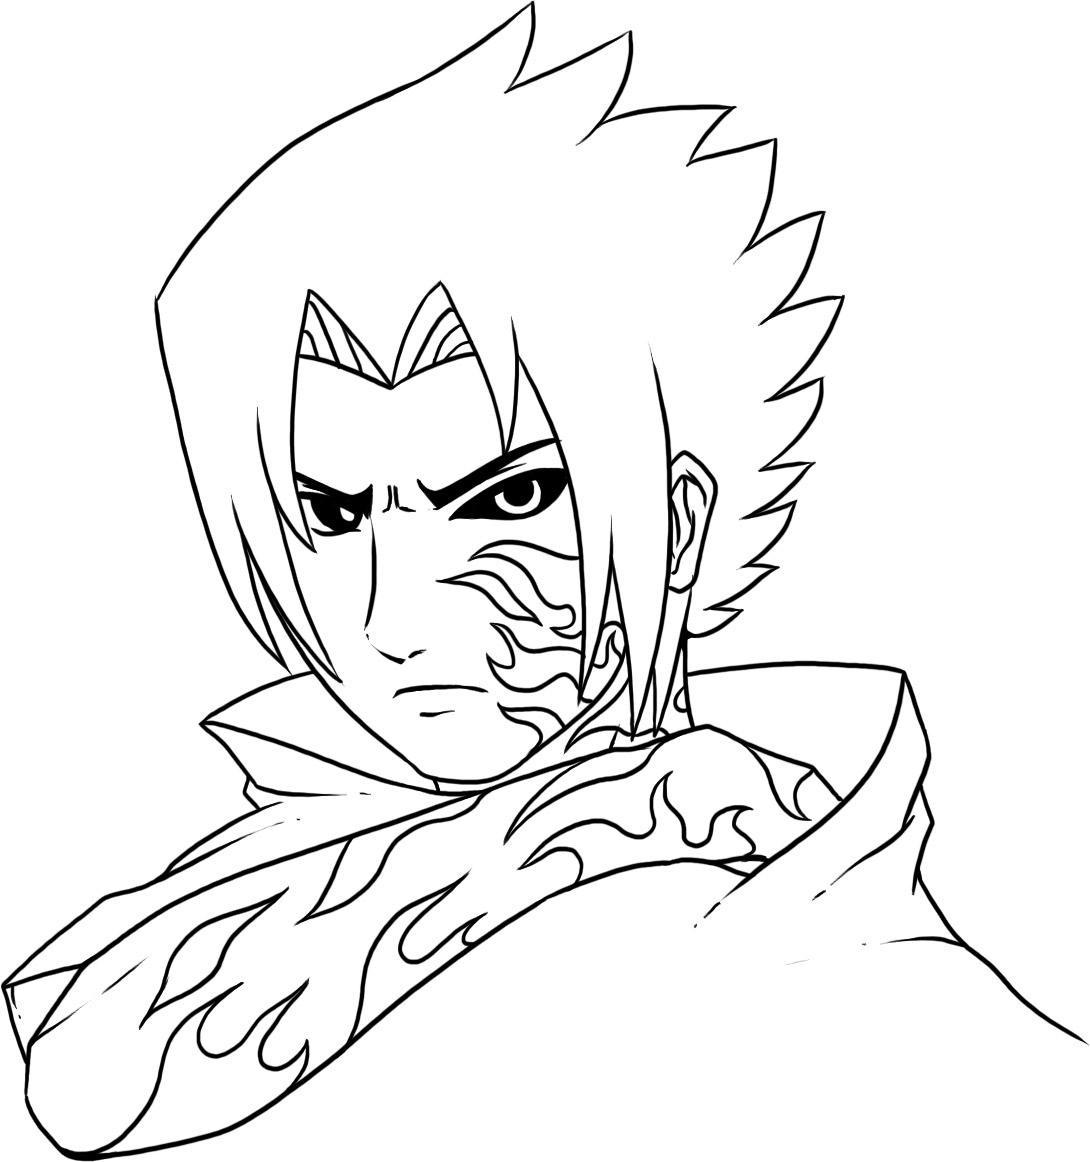 Anime Naruto Coloring Pages Free Printable Naruto Coloring Pages For Kids